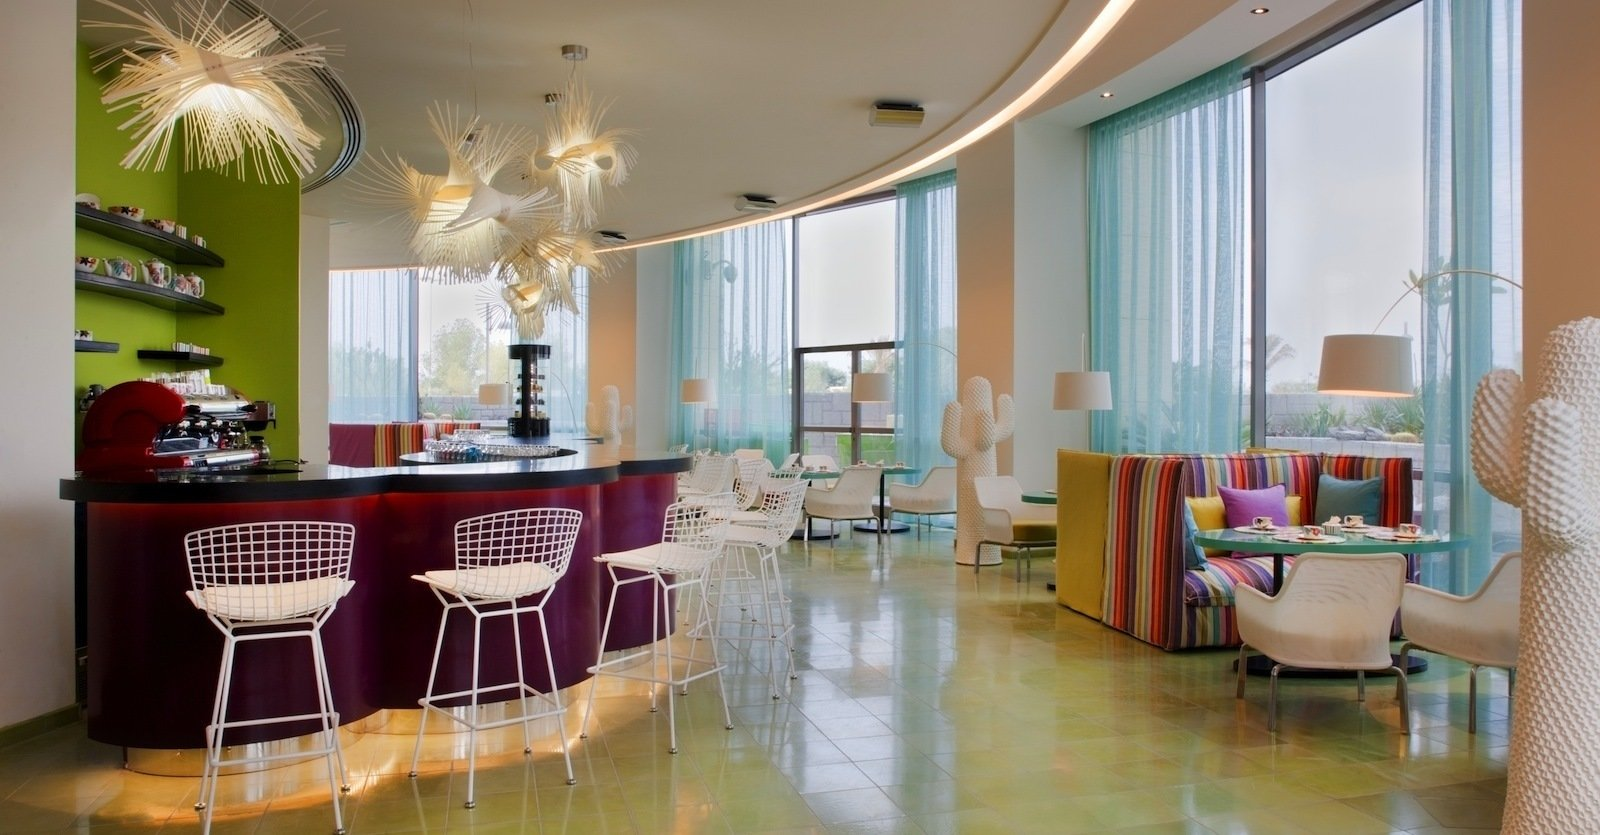 The Choco Bar offers Kuwait a chance to sample two of the best Italian delicacies: chocolate and coffee. The white floor lamps are Marc Saddler Twiggy lamps. The barstools are Bertoia wire chairs. Photo by Gerry O'Leary.  Office by Muhajir Anuar from Hotel Missoni Kuwait